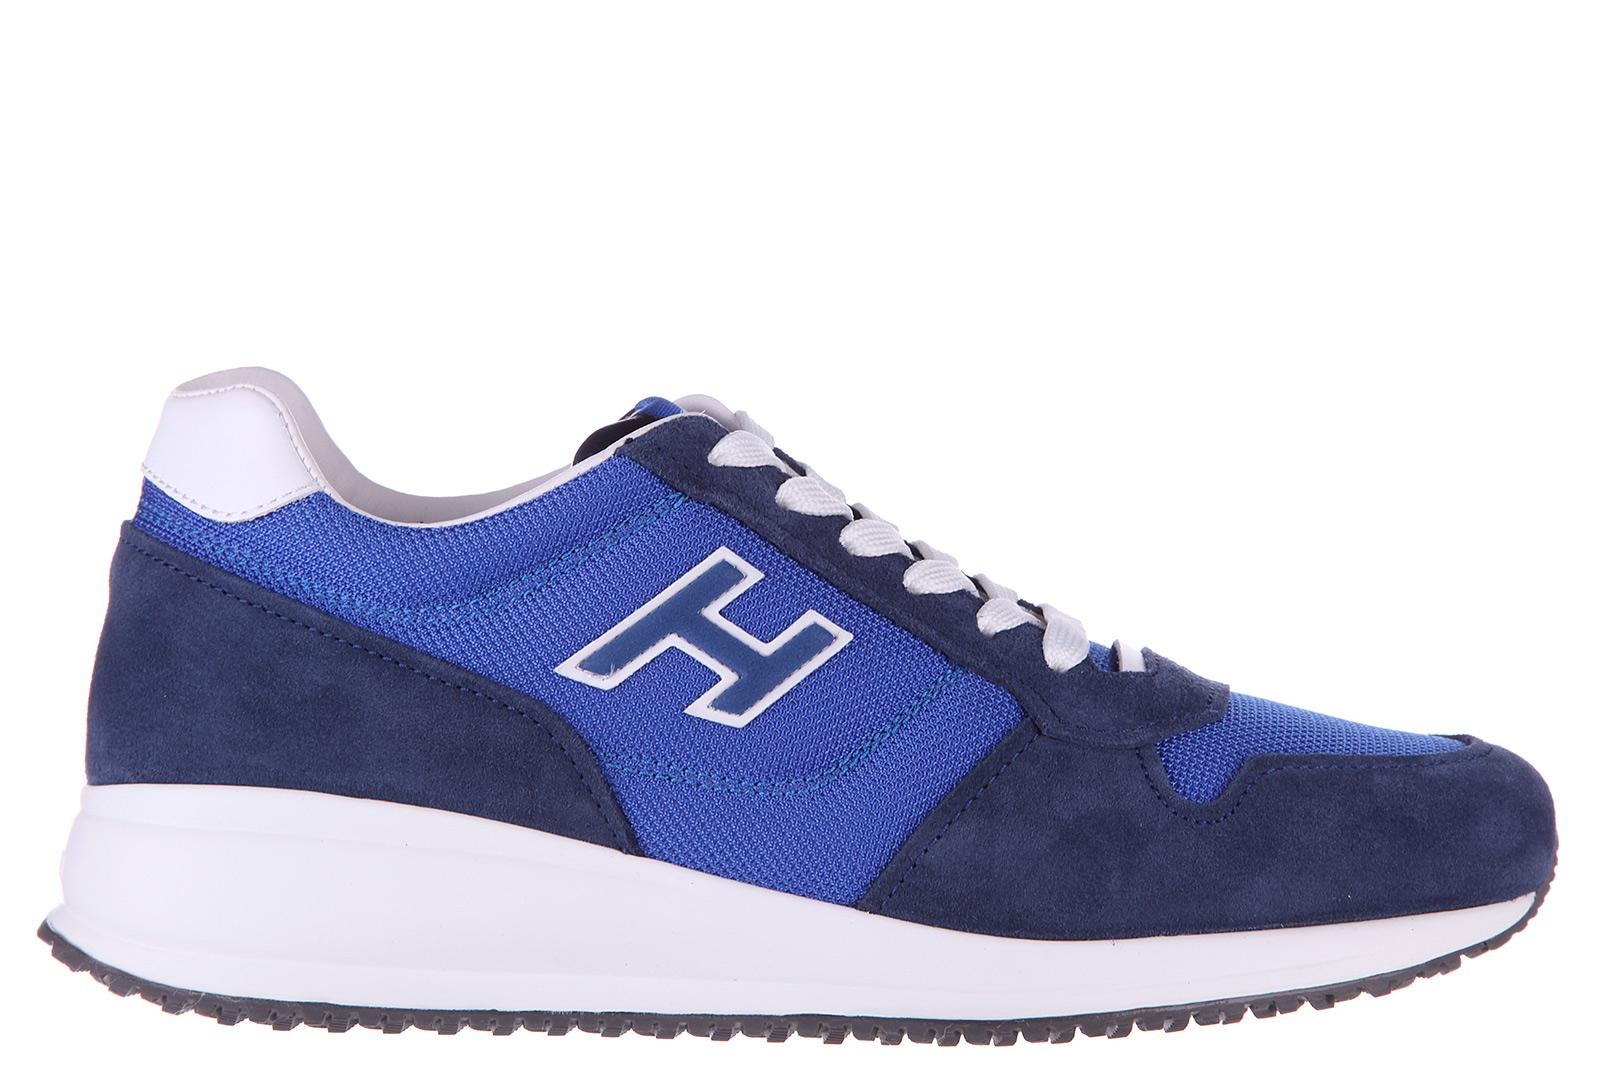 0e568914817c3 Hogan Men s Shoes Suede Trainers Sneakers Interactive N20 H Flock In Blue